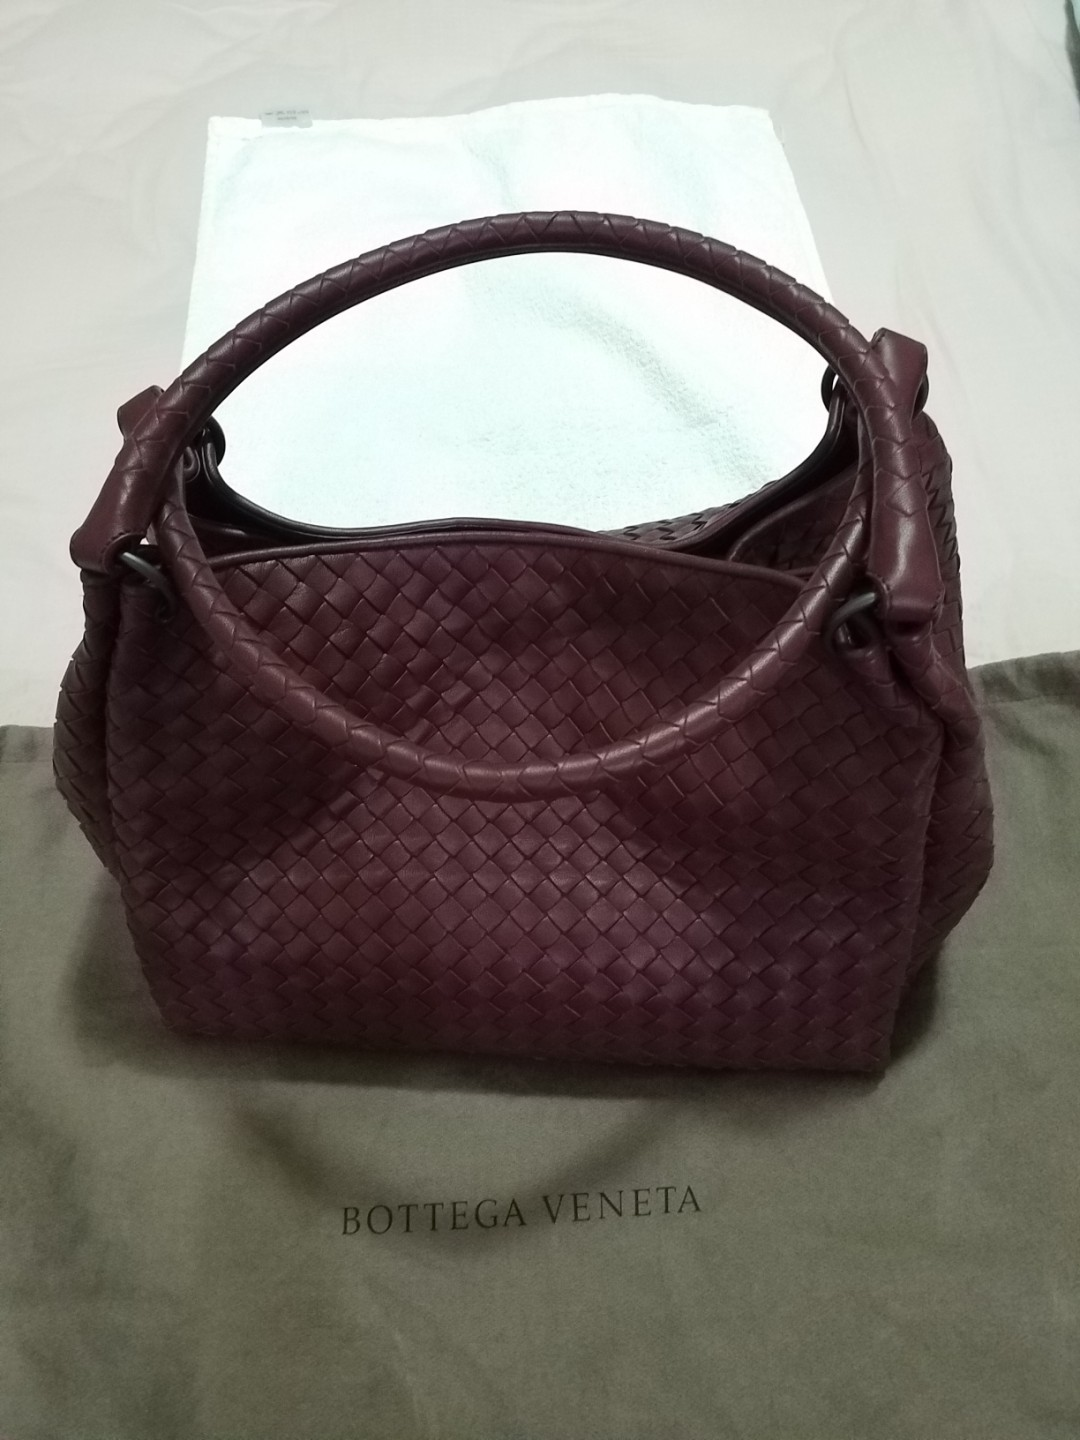 82284d30d0499 Bottega Veneta nero Intrecciato nappa parachute bag, Luxury, Bags ...